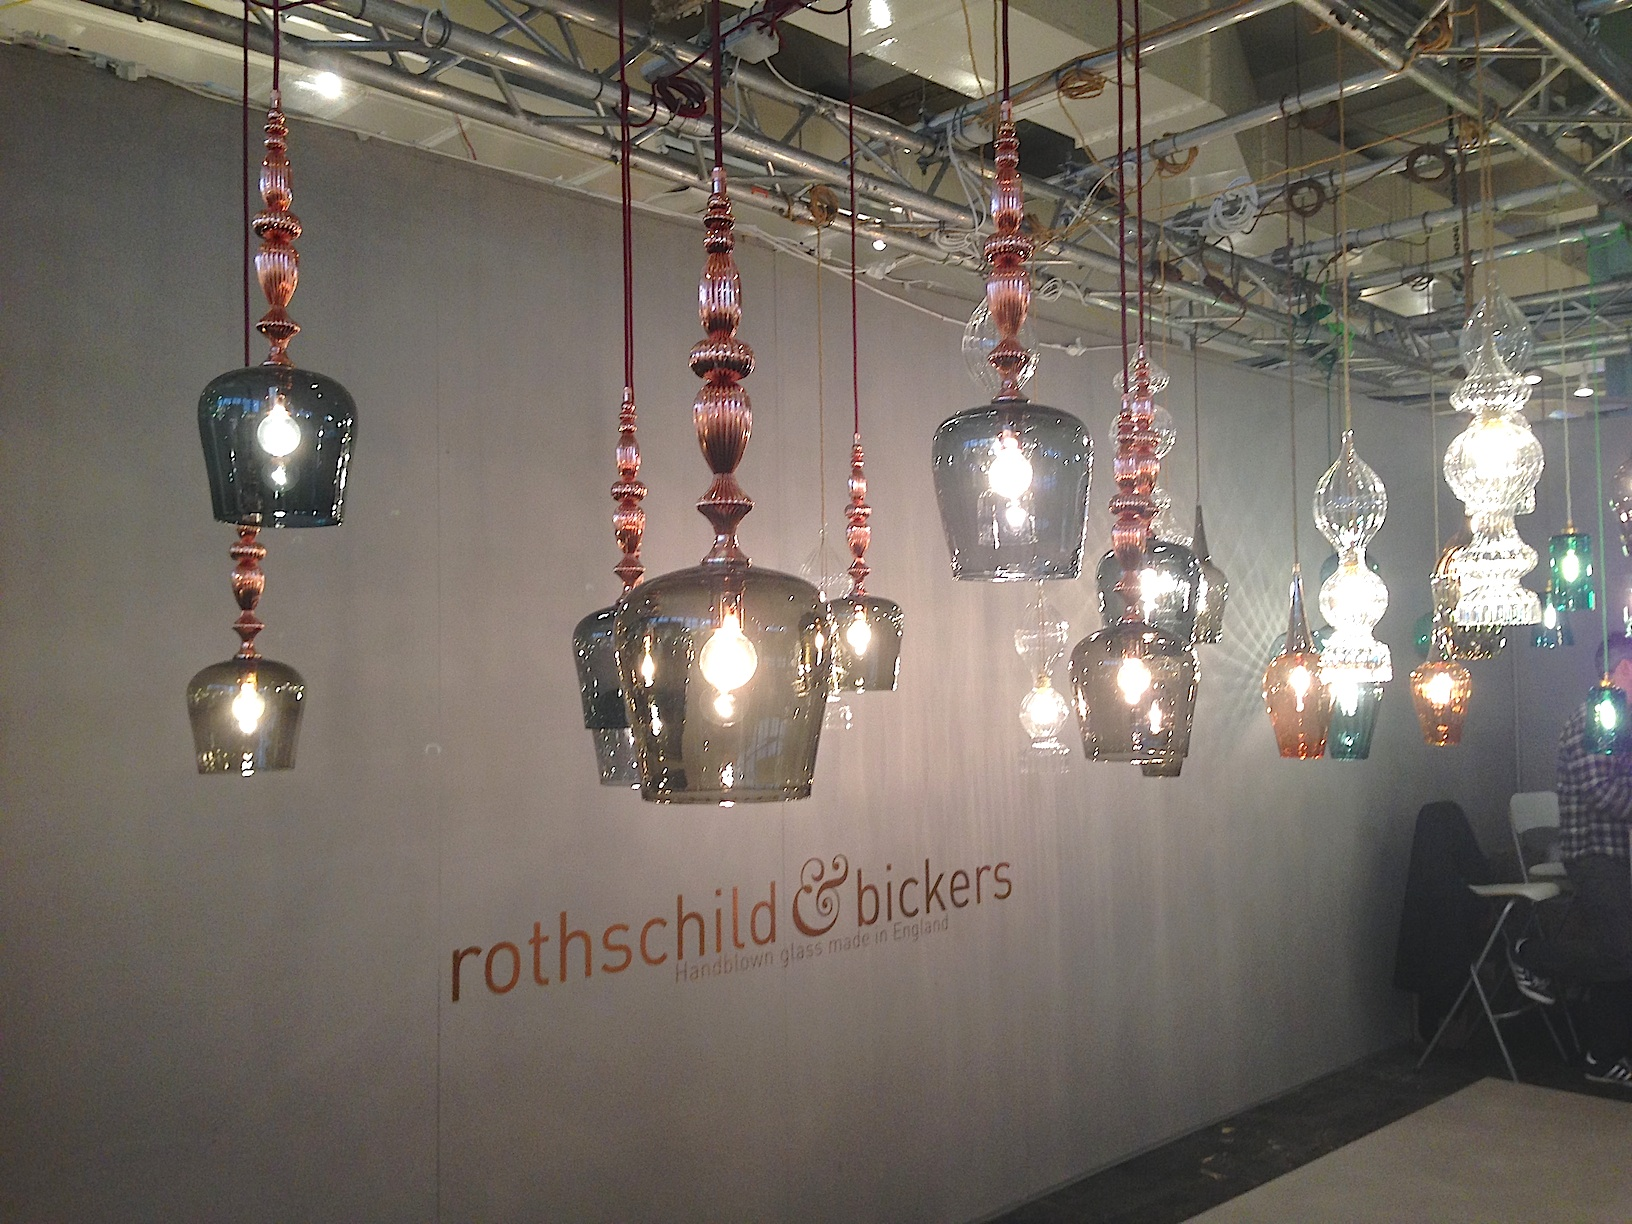 Design Junction London 2013 - Rotschild & Bickers